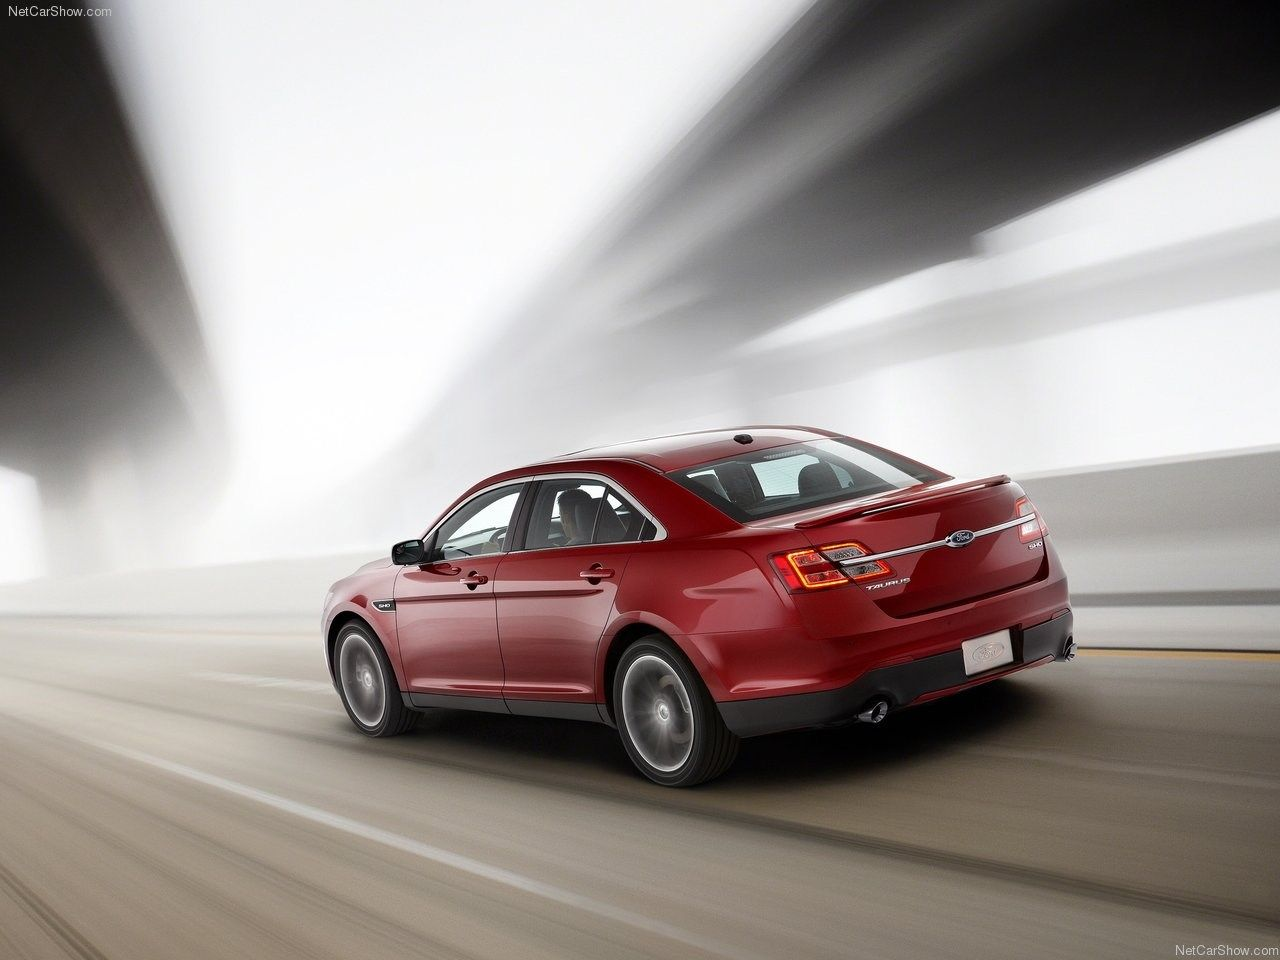 Ford Taurus Wallpapers For Mac Desktop 1280x960 118 Kb Ford